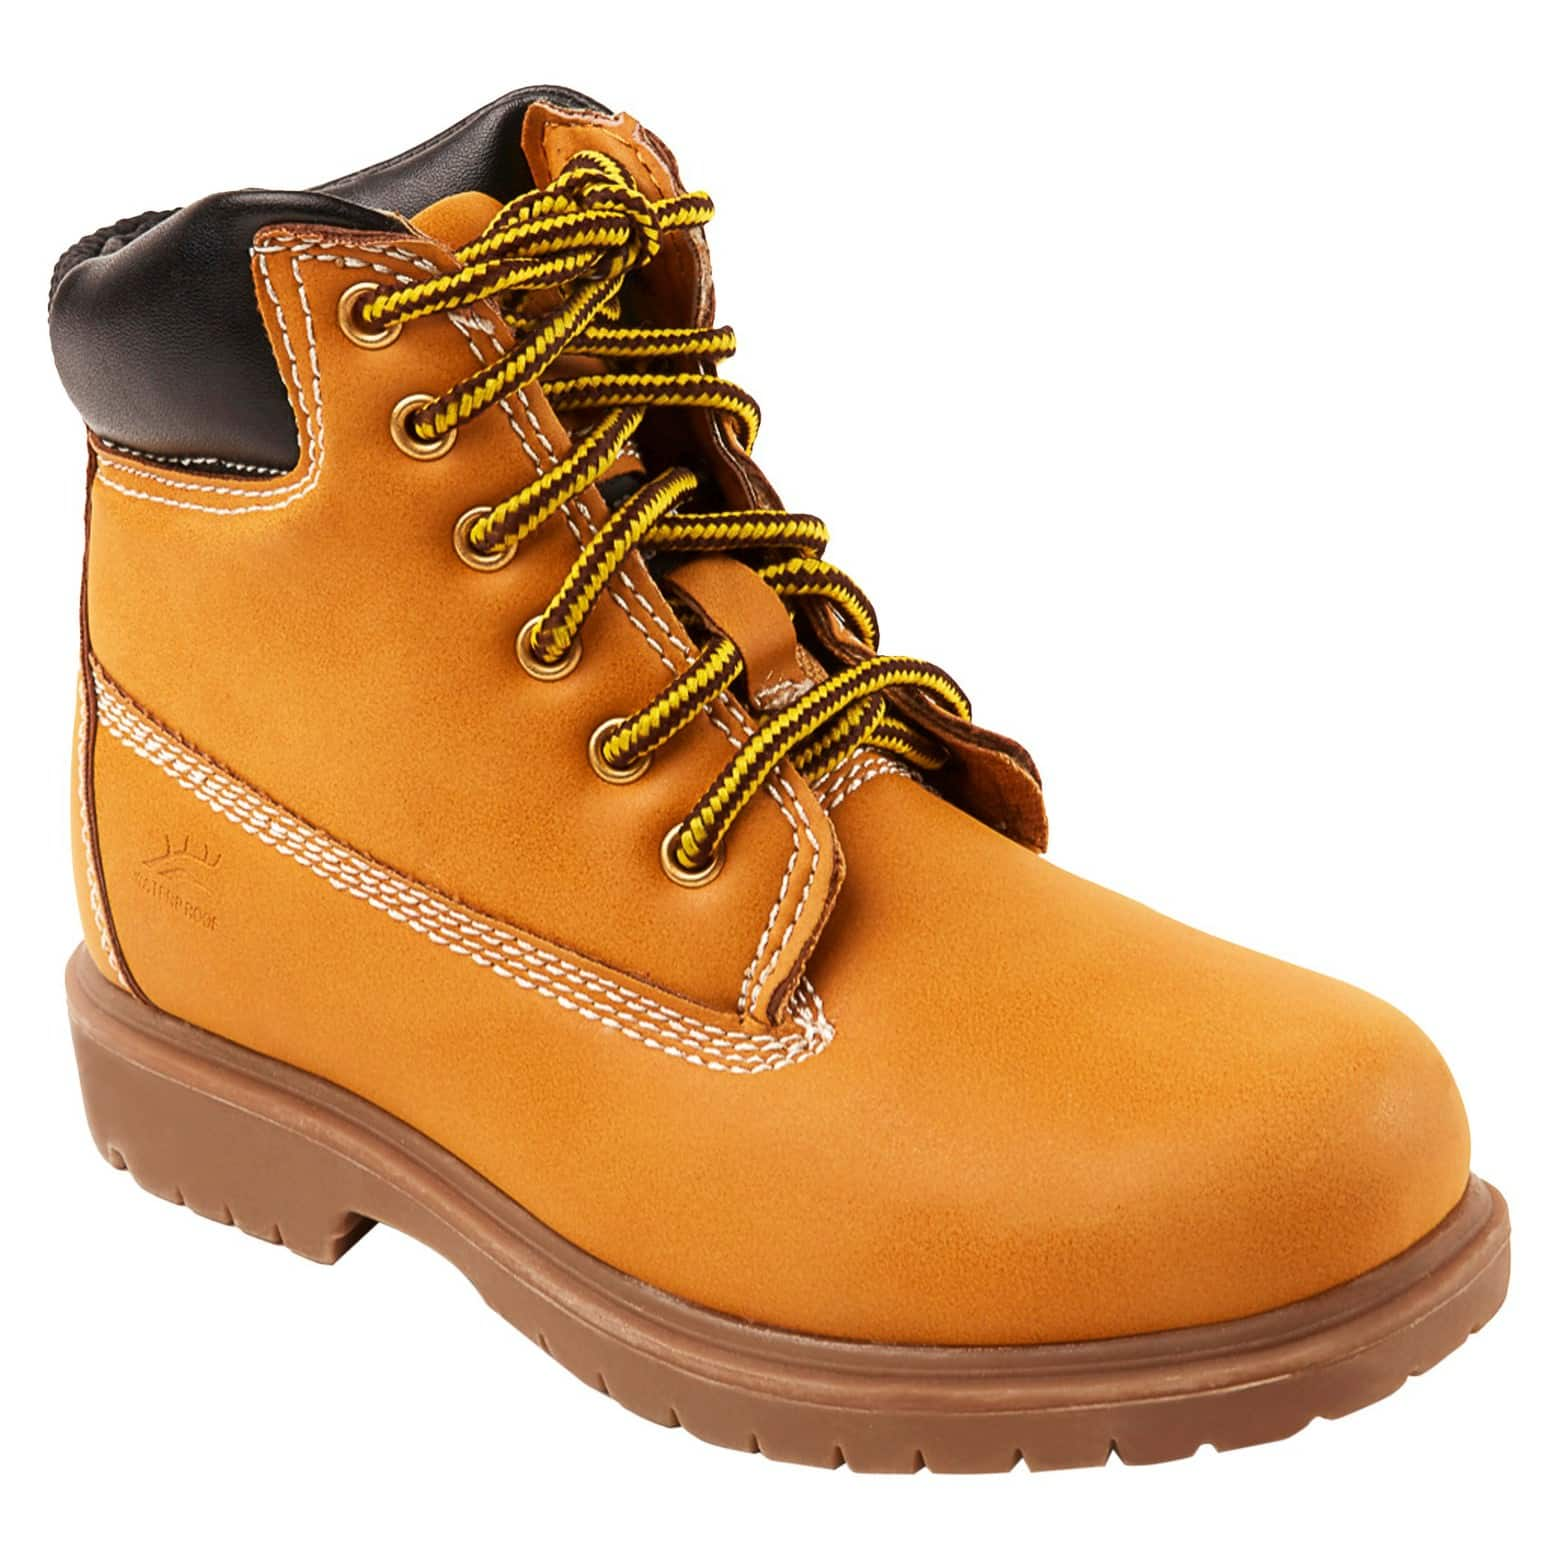 Boys' Deer Stags Mack 2 Water Proof Boots $15 shipped *Target REDcard Users Only*